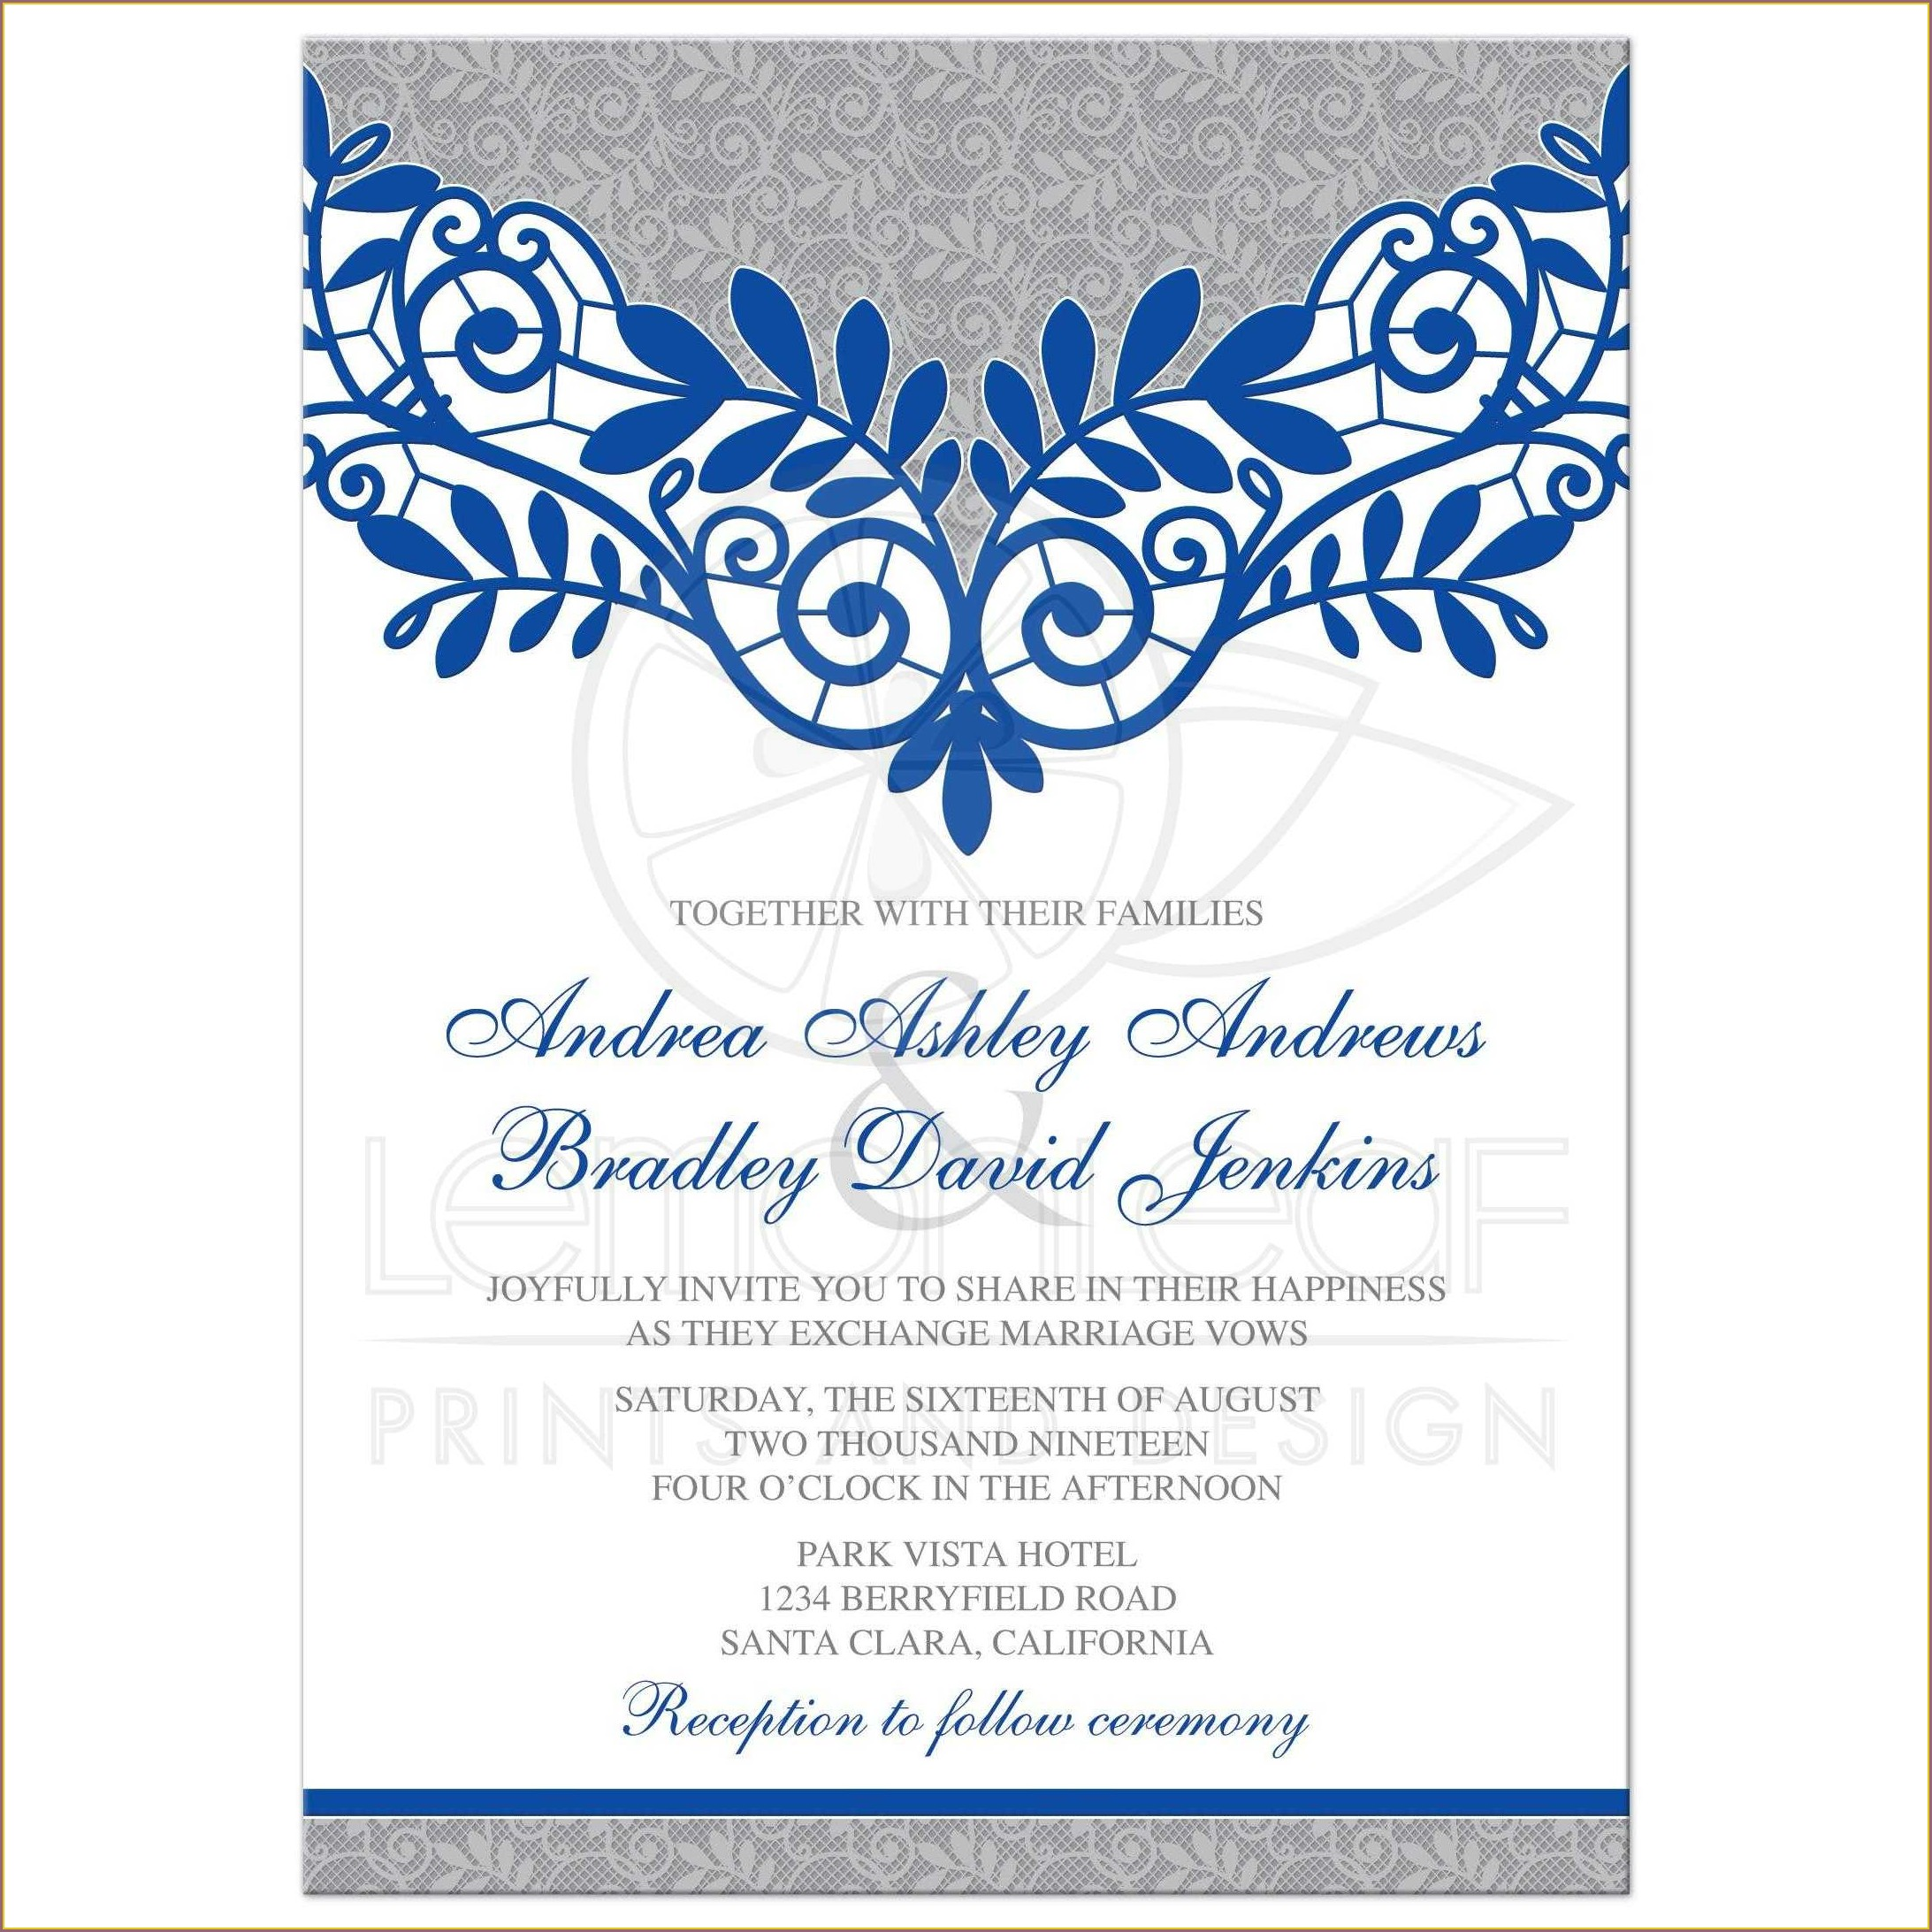 Royal Blue Floral Wedding Invitation Background